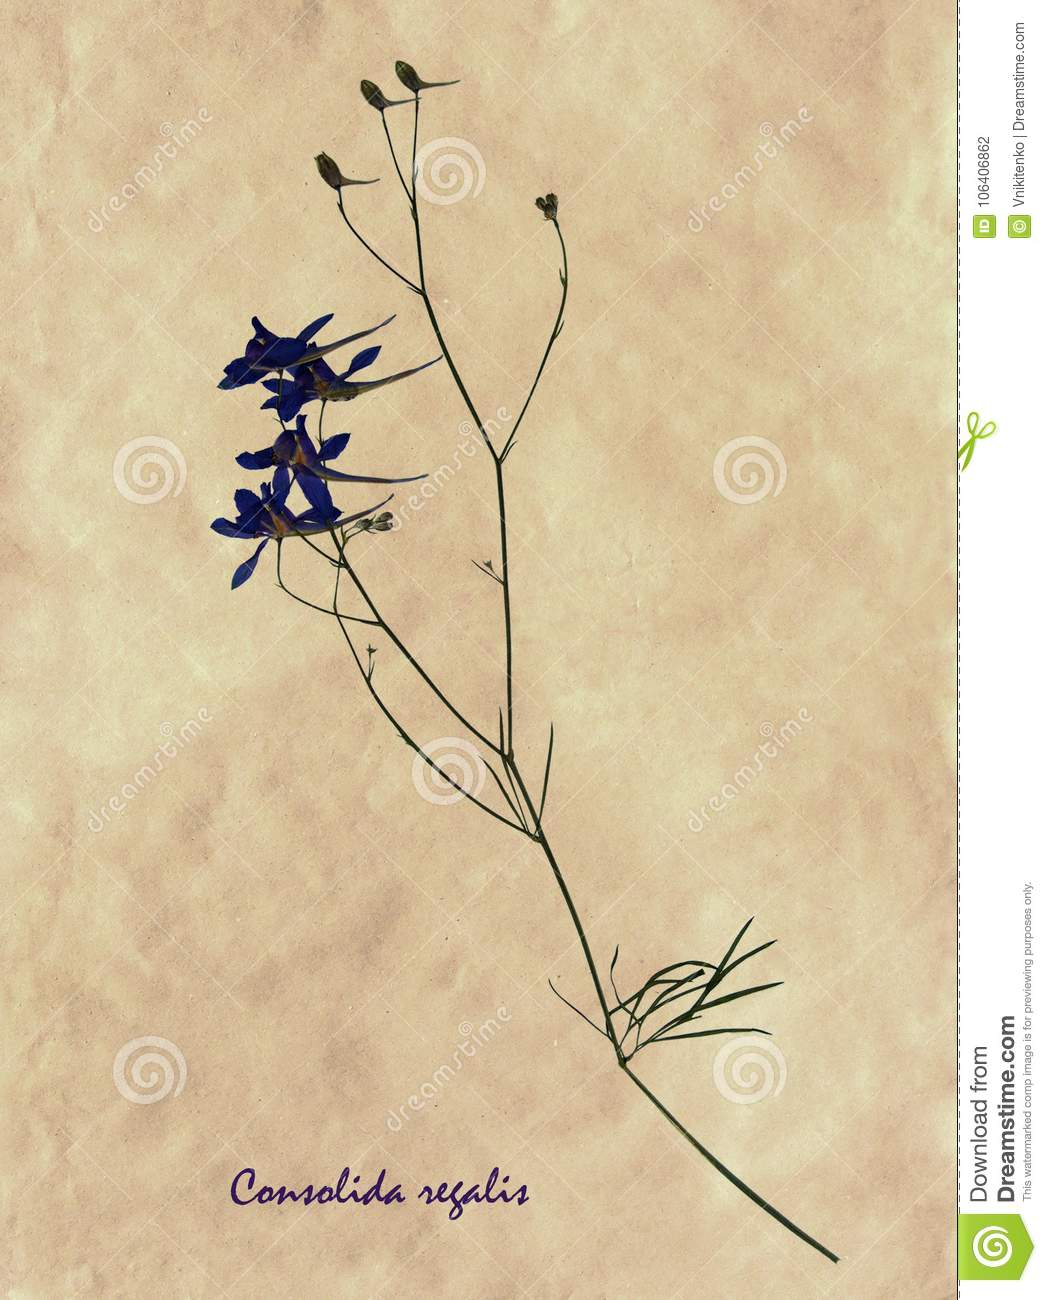 Pressed And Dried Flowers Of Forking Larkspur Stock Photo Image Of